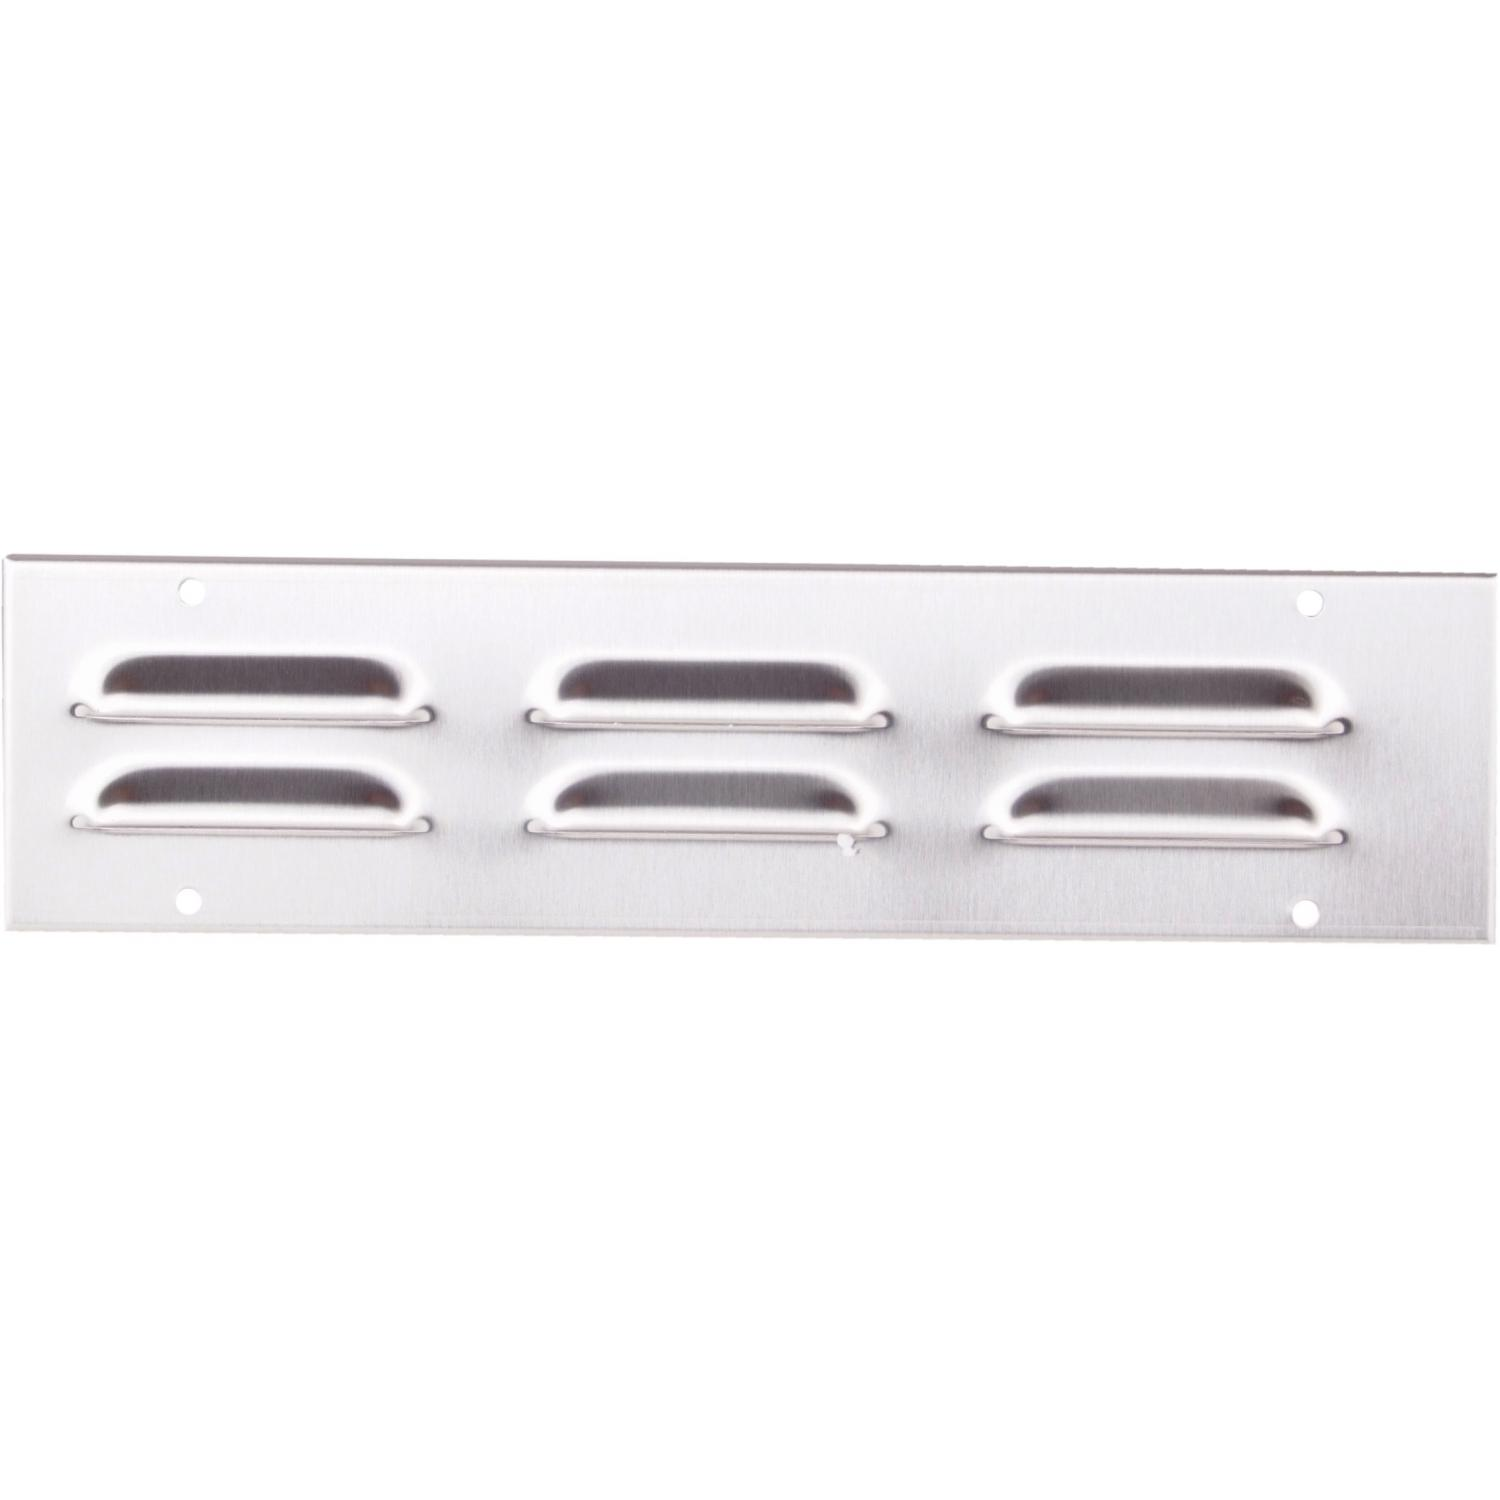 BBQ Guys 3 X 12 Stainless Steel Island Vent